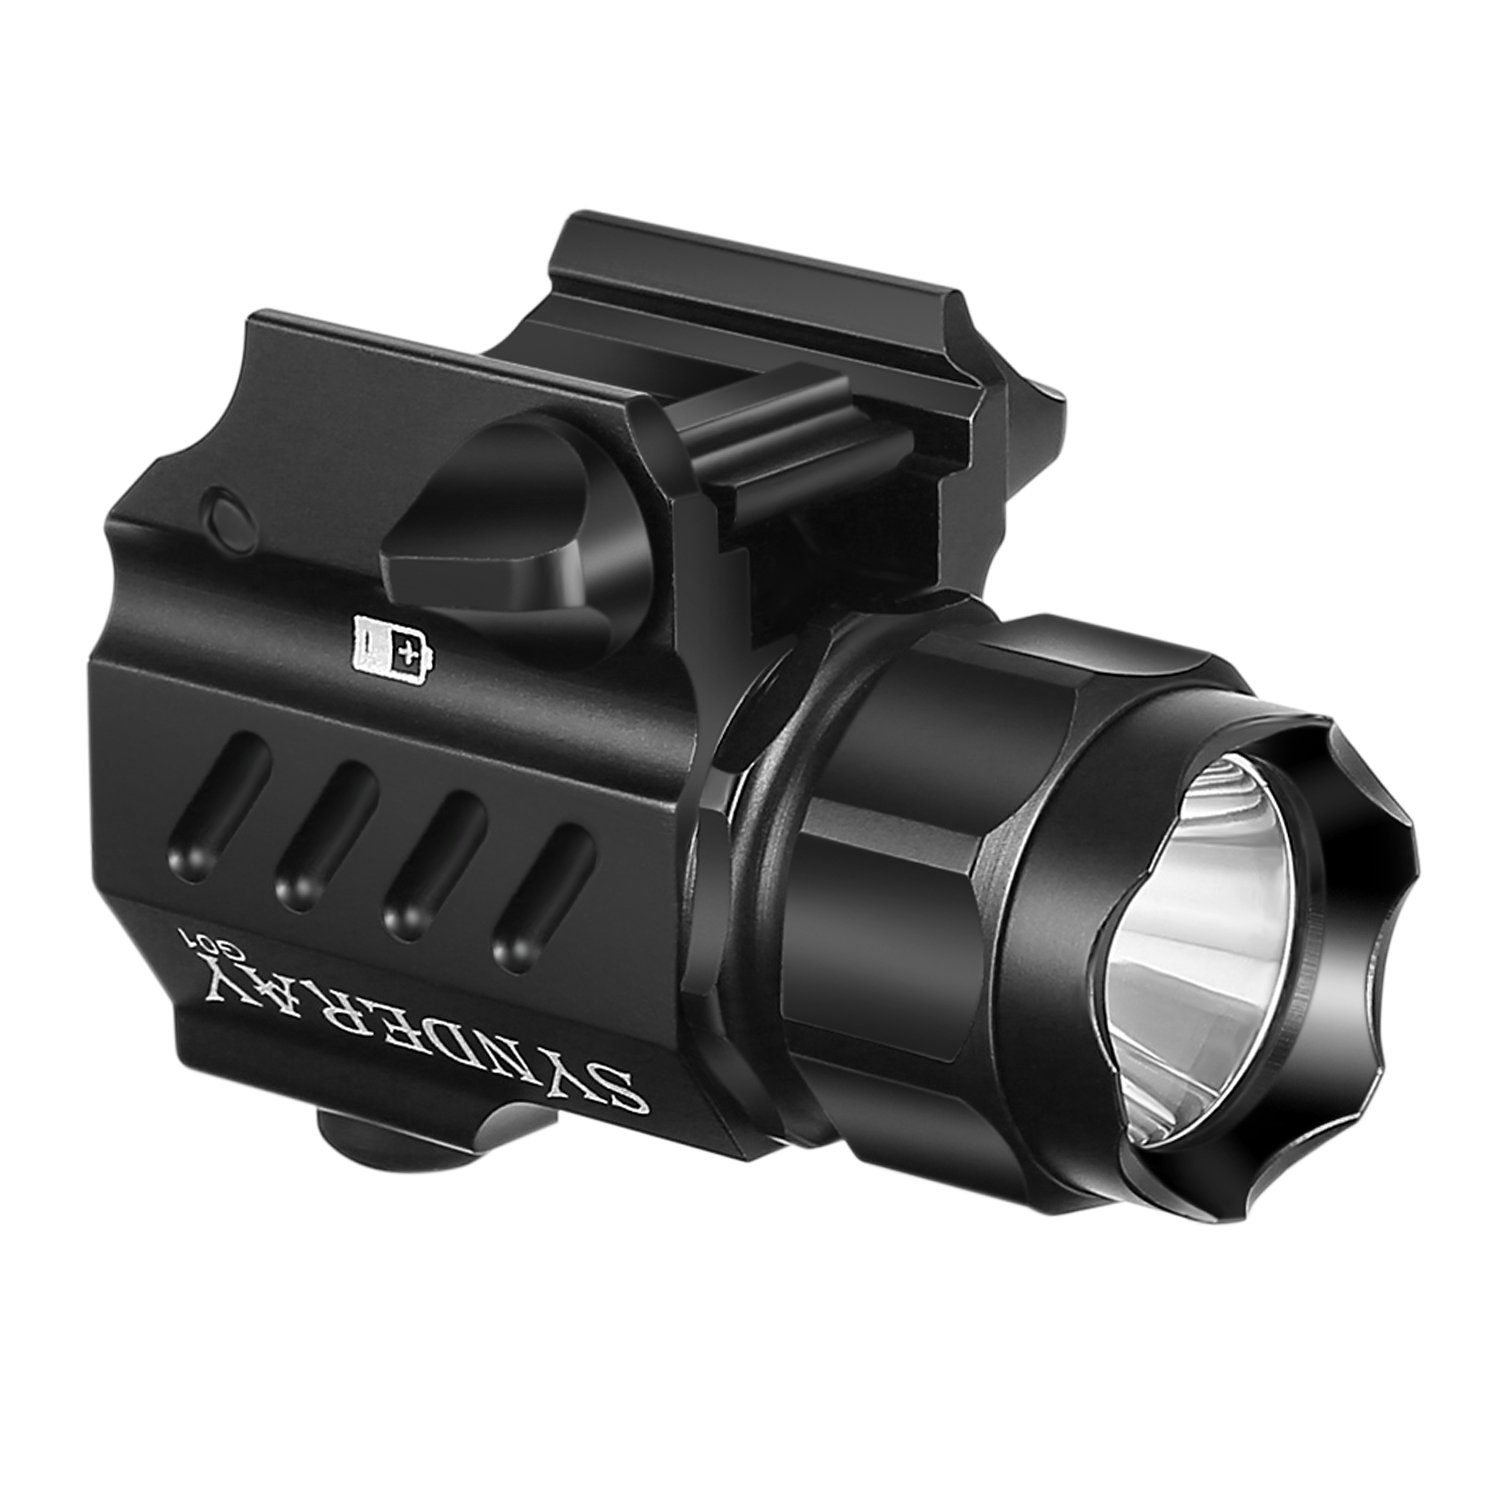 SyndeRay G01 CREE LED Tactical Gun Flashlight 2-Mode 230LM Pistol Handgun Torch Light for Hiking,Camping,Hunting and Other Indoor/Outdoor Activities by SyndeRay (Image #9)